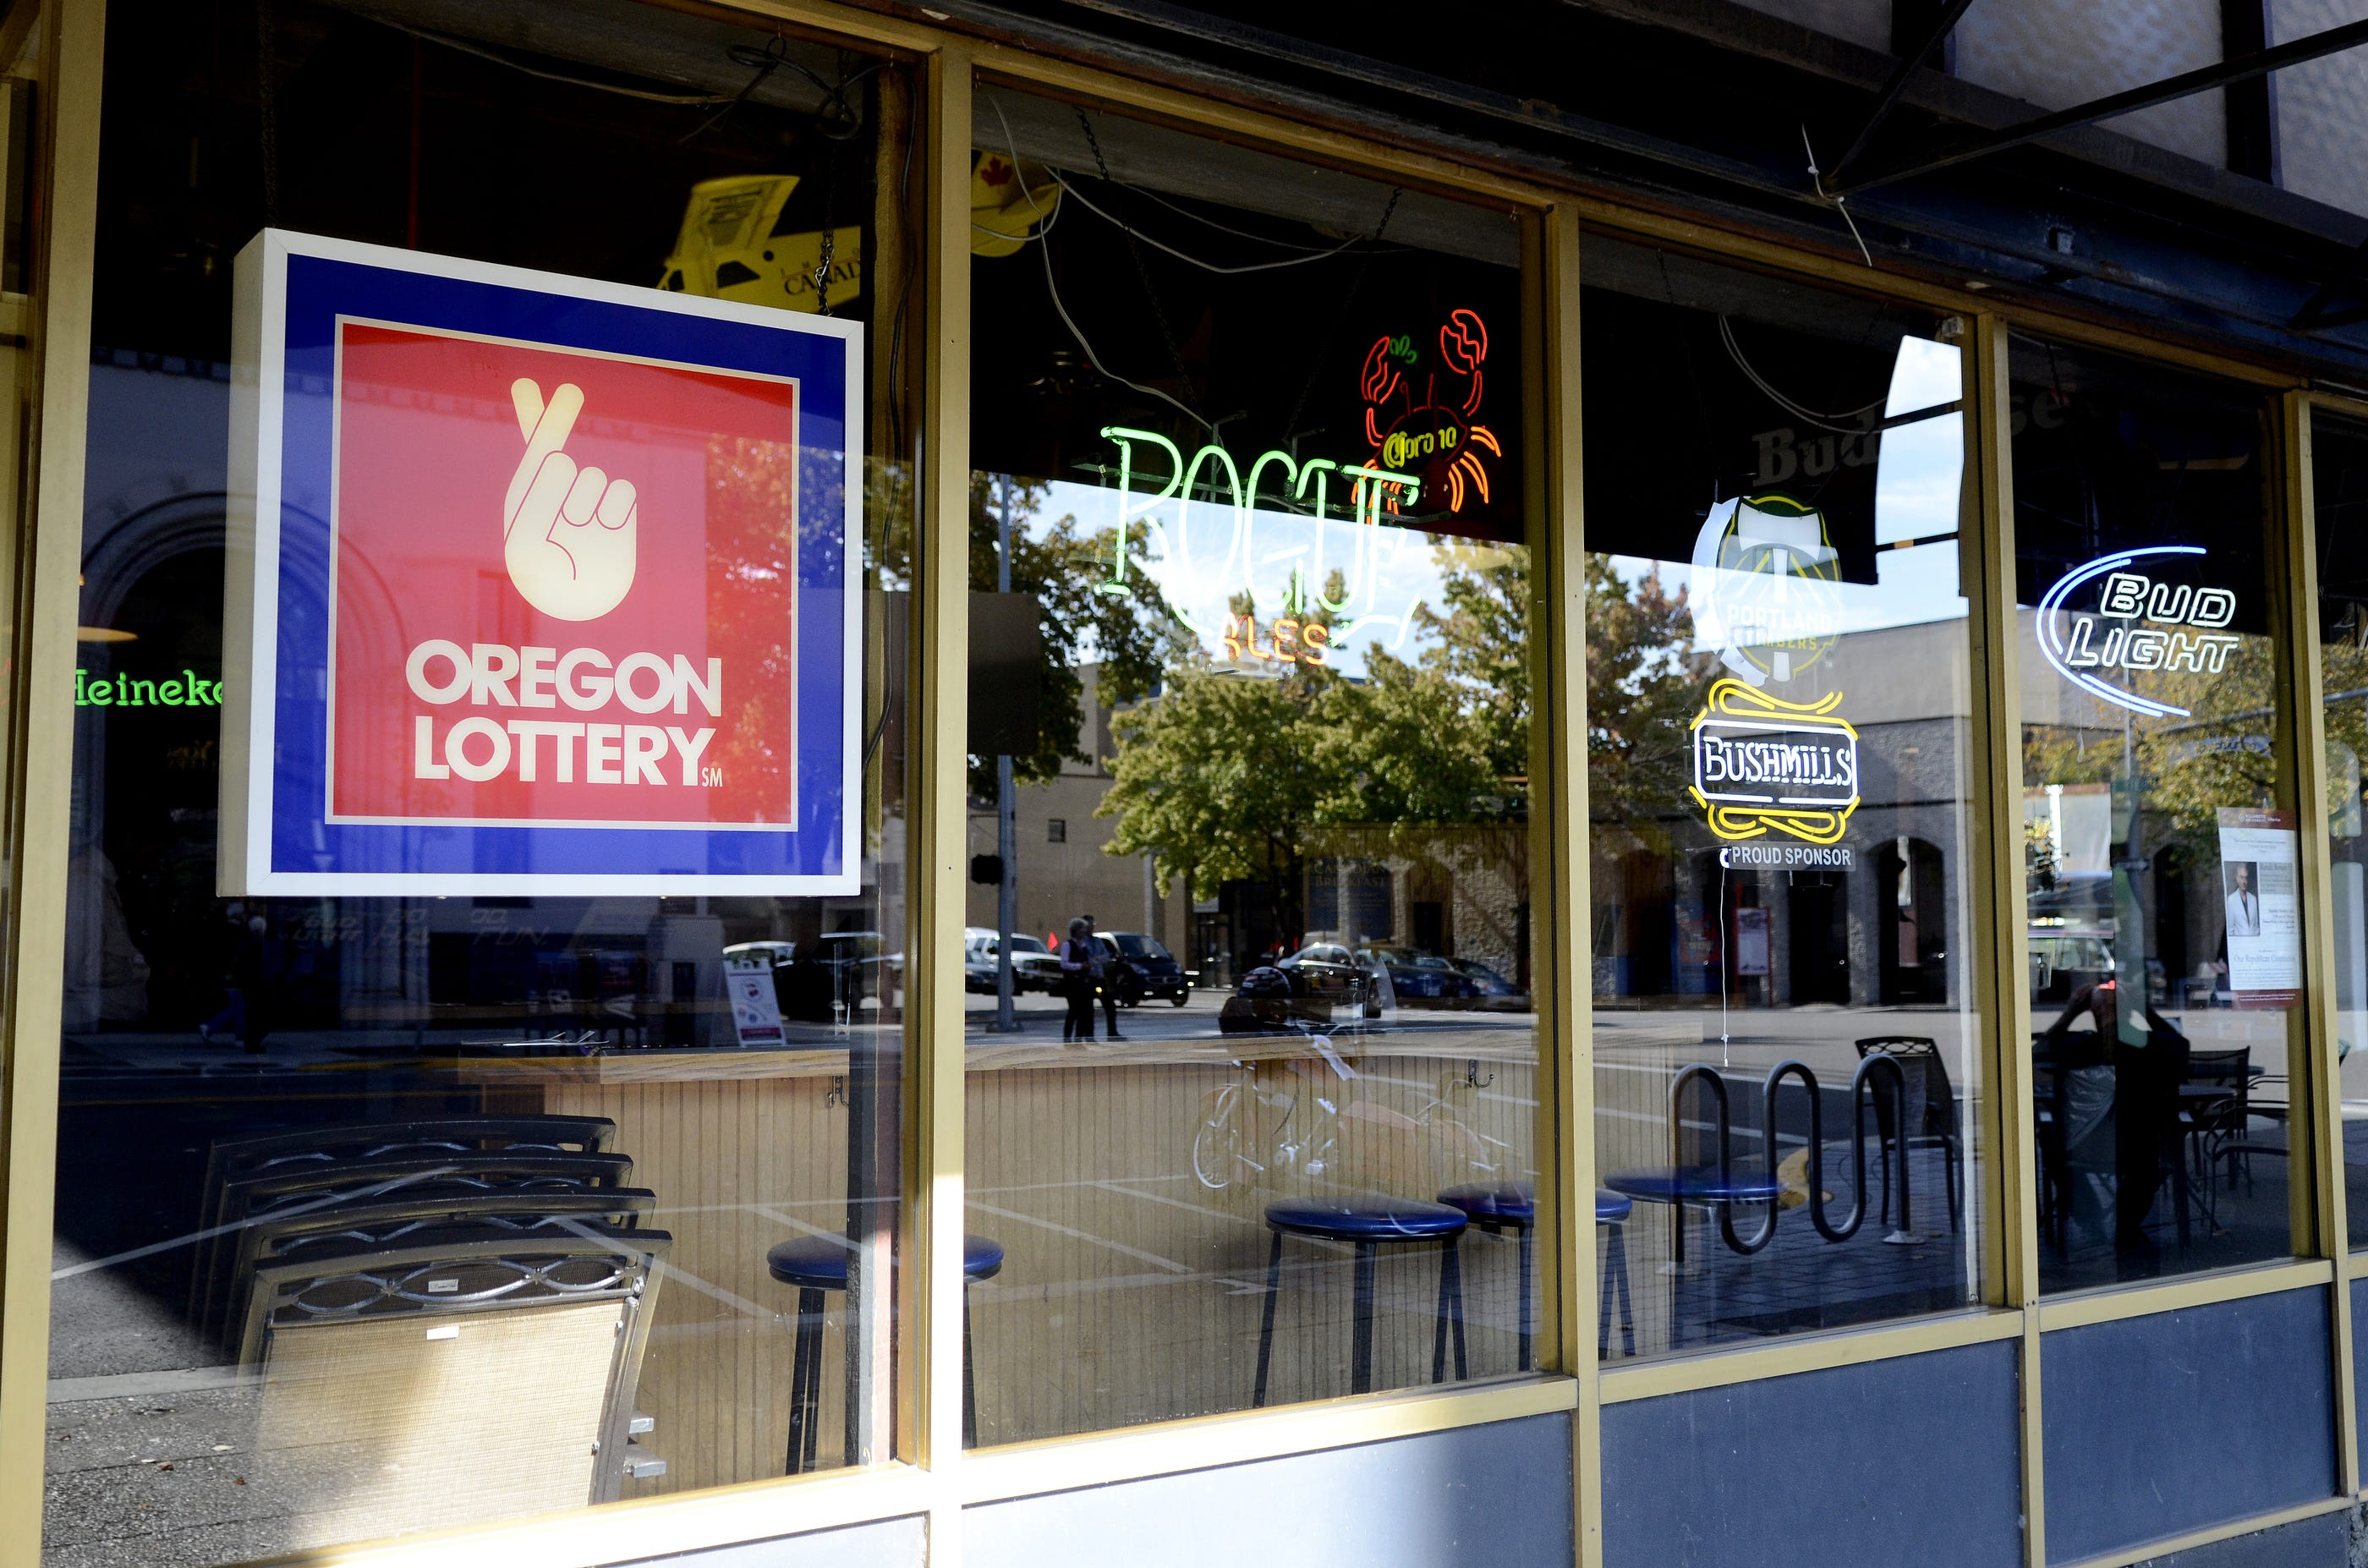 Multi state millions raffle prizes for baby